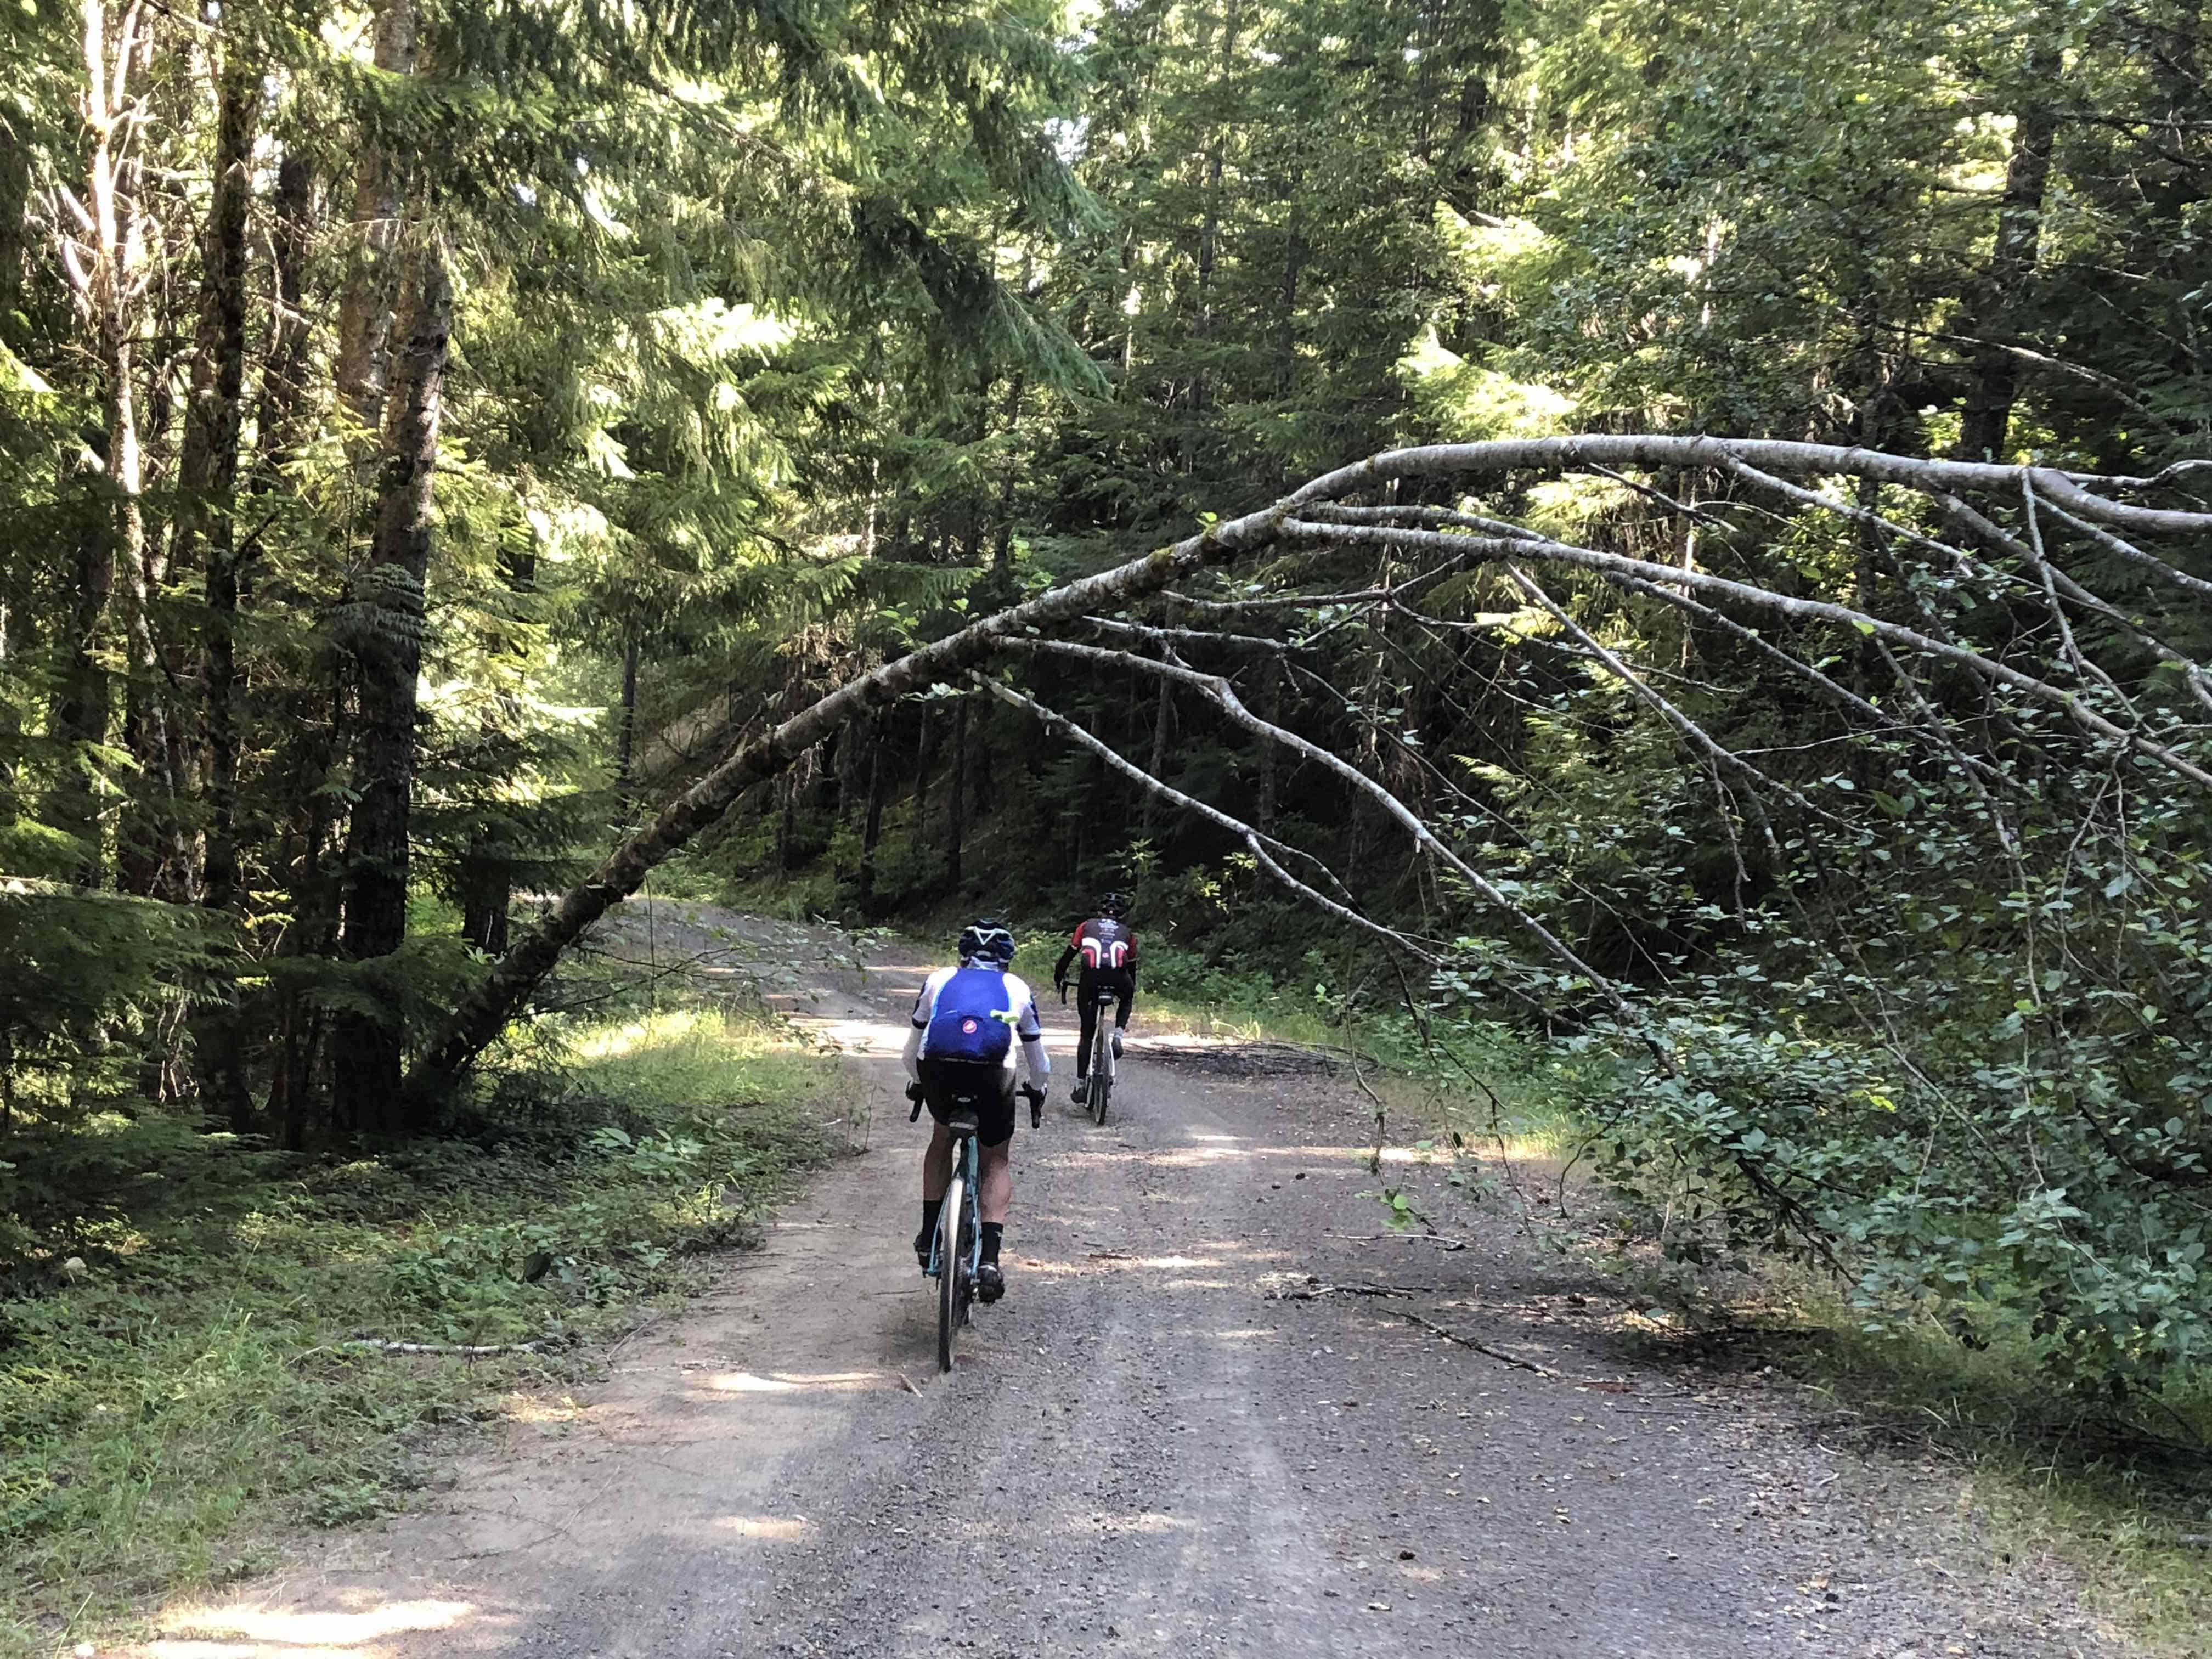 Two riders descending gravel Forest Road 1012, Willamette National Forest